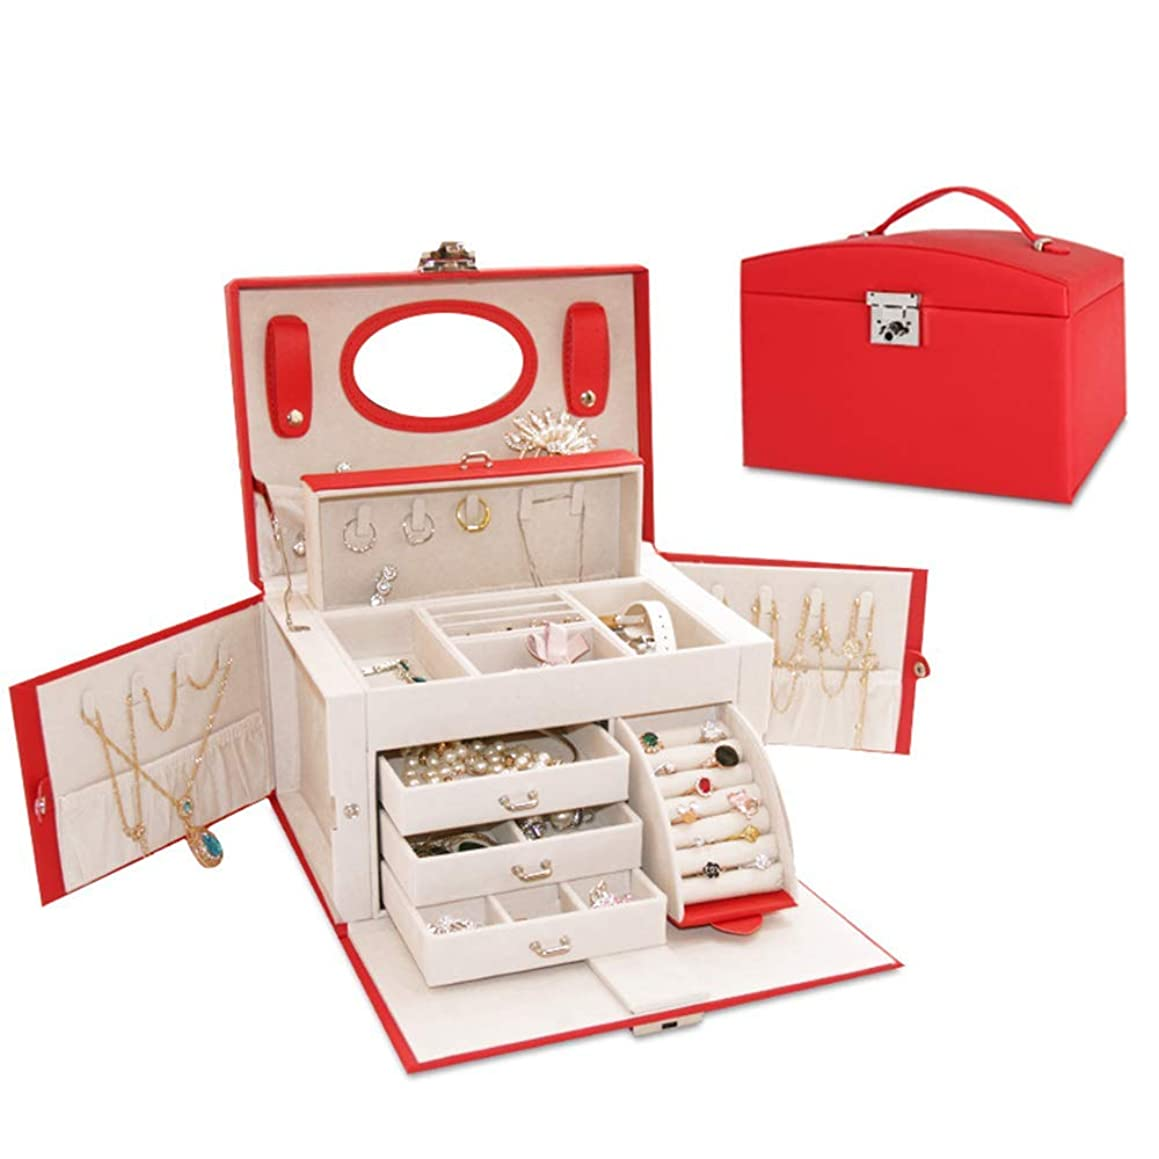 SHGK Jewellery Boxes for Women with Drawers, Lockable Jewellery Case with Mirror for Rings Bracelets Earrings Necklaces Velvet Lining Gift